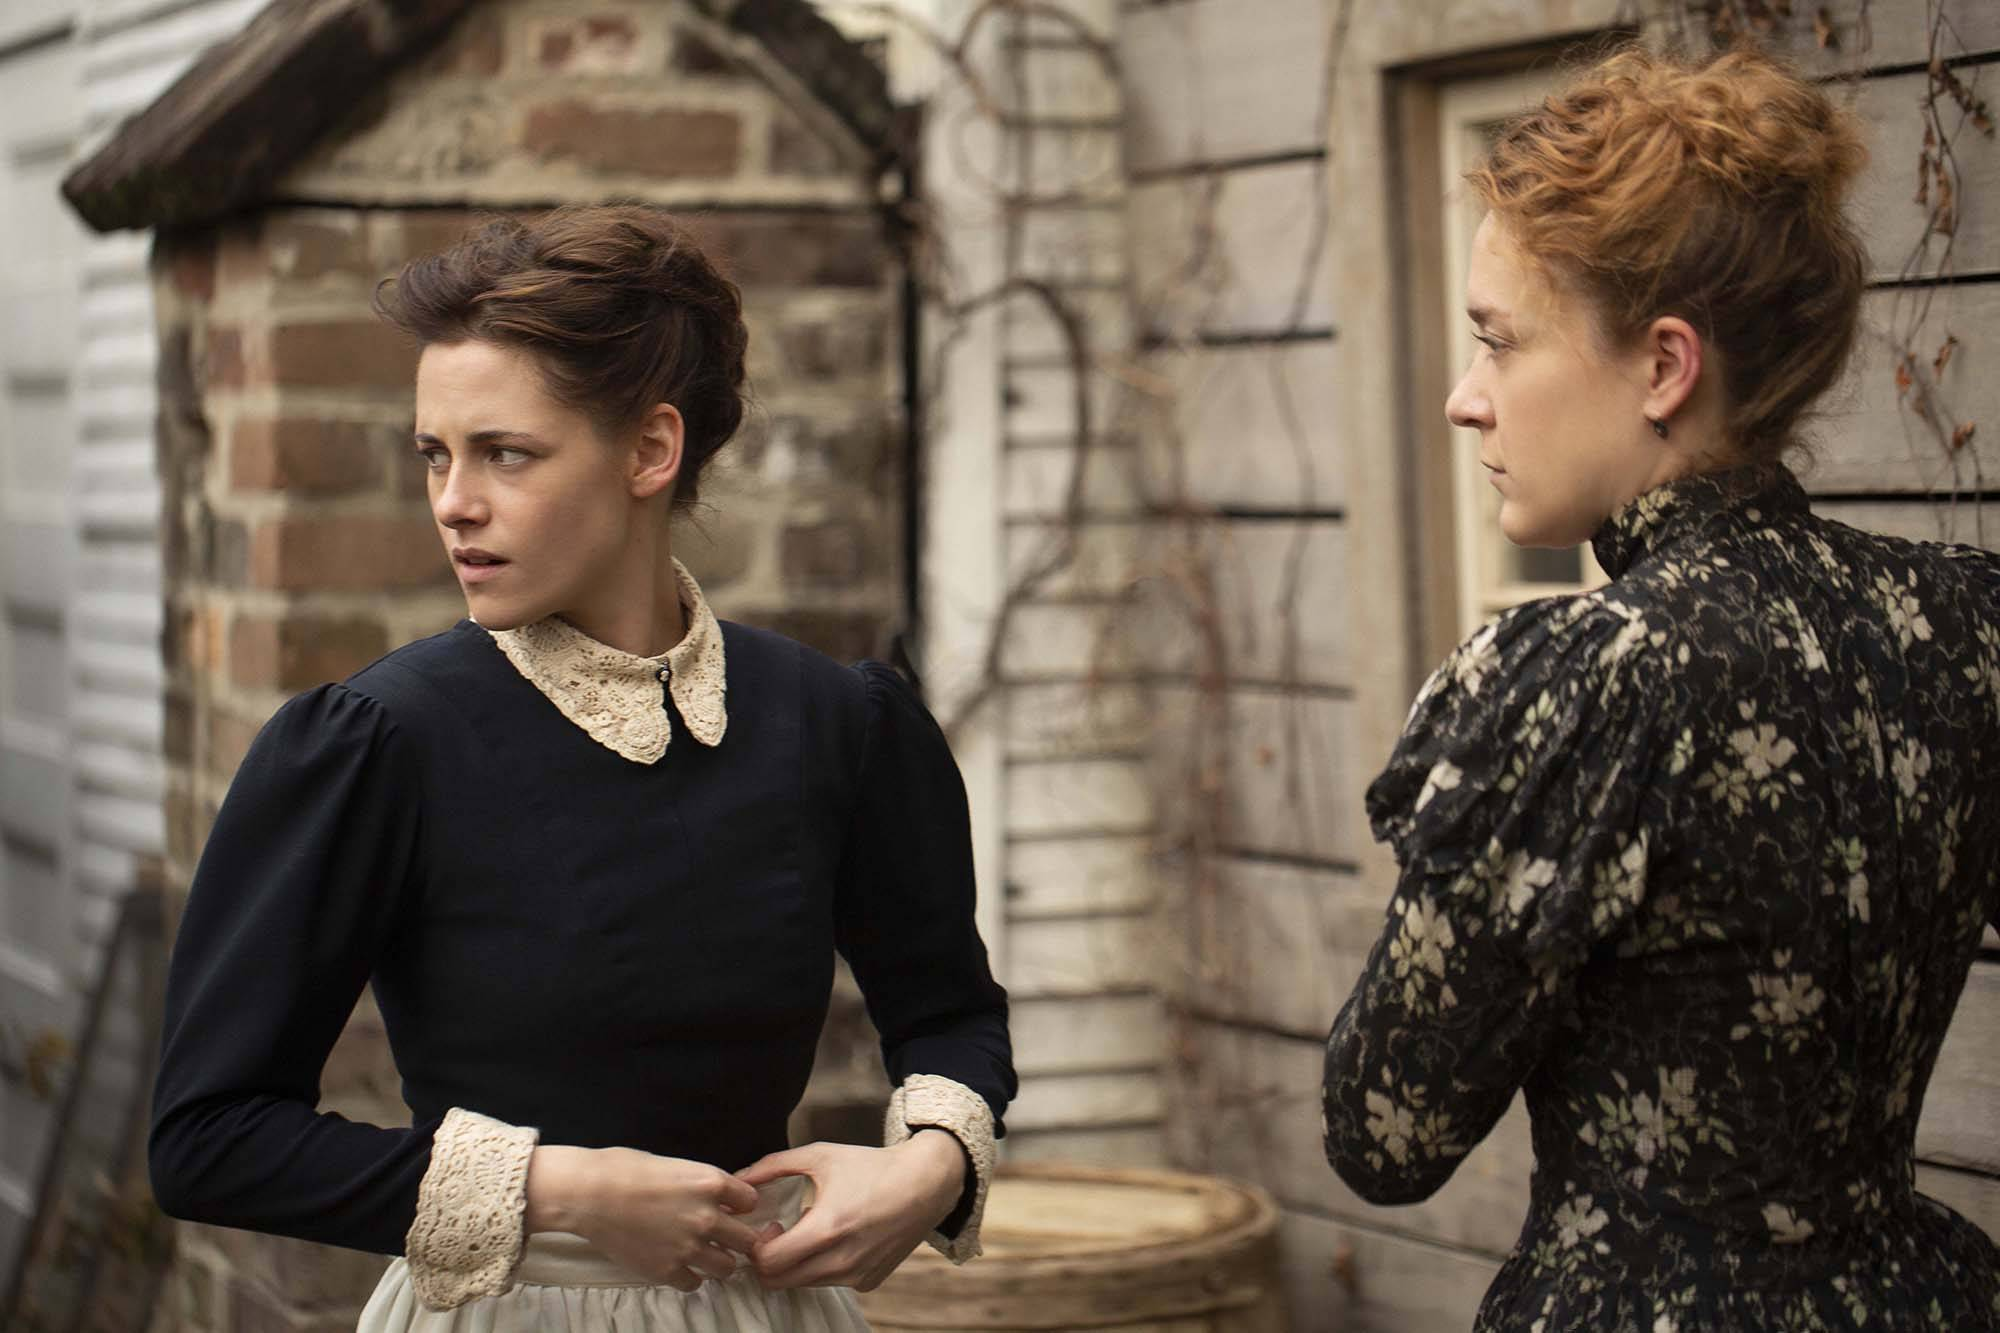 """Lizzie"" posits that the maid Bridget (Kristen Stewart), left, and Lizzie Borden (Chloë Sevigny) were involved in a relationship that dismayed Lizzie's father. Could this have led to the infamous 1892 Borden murders?"